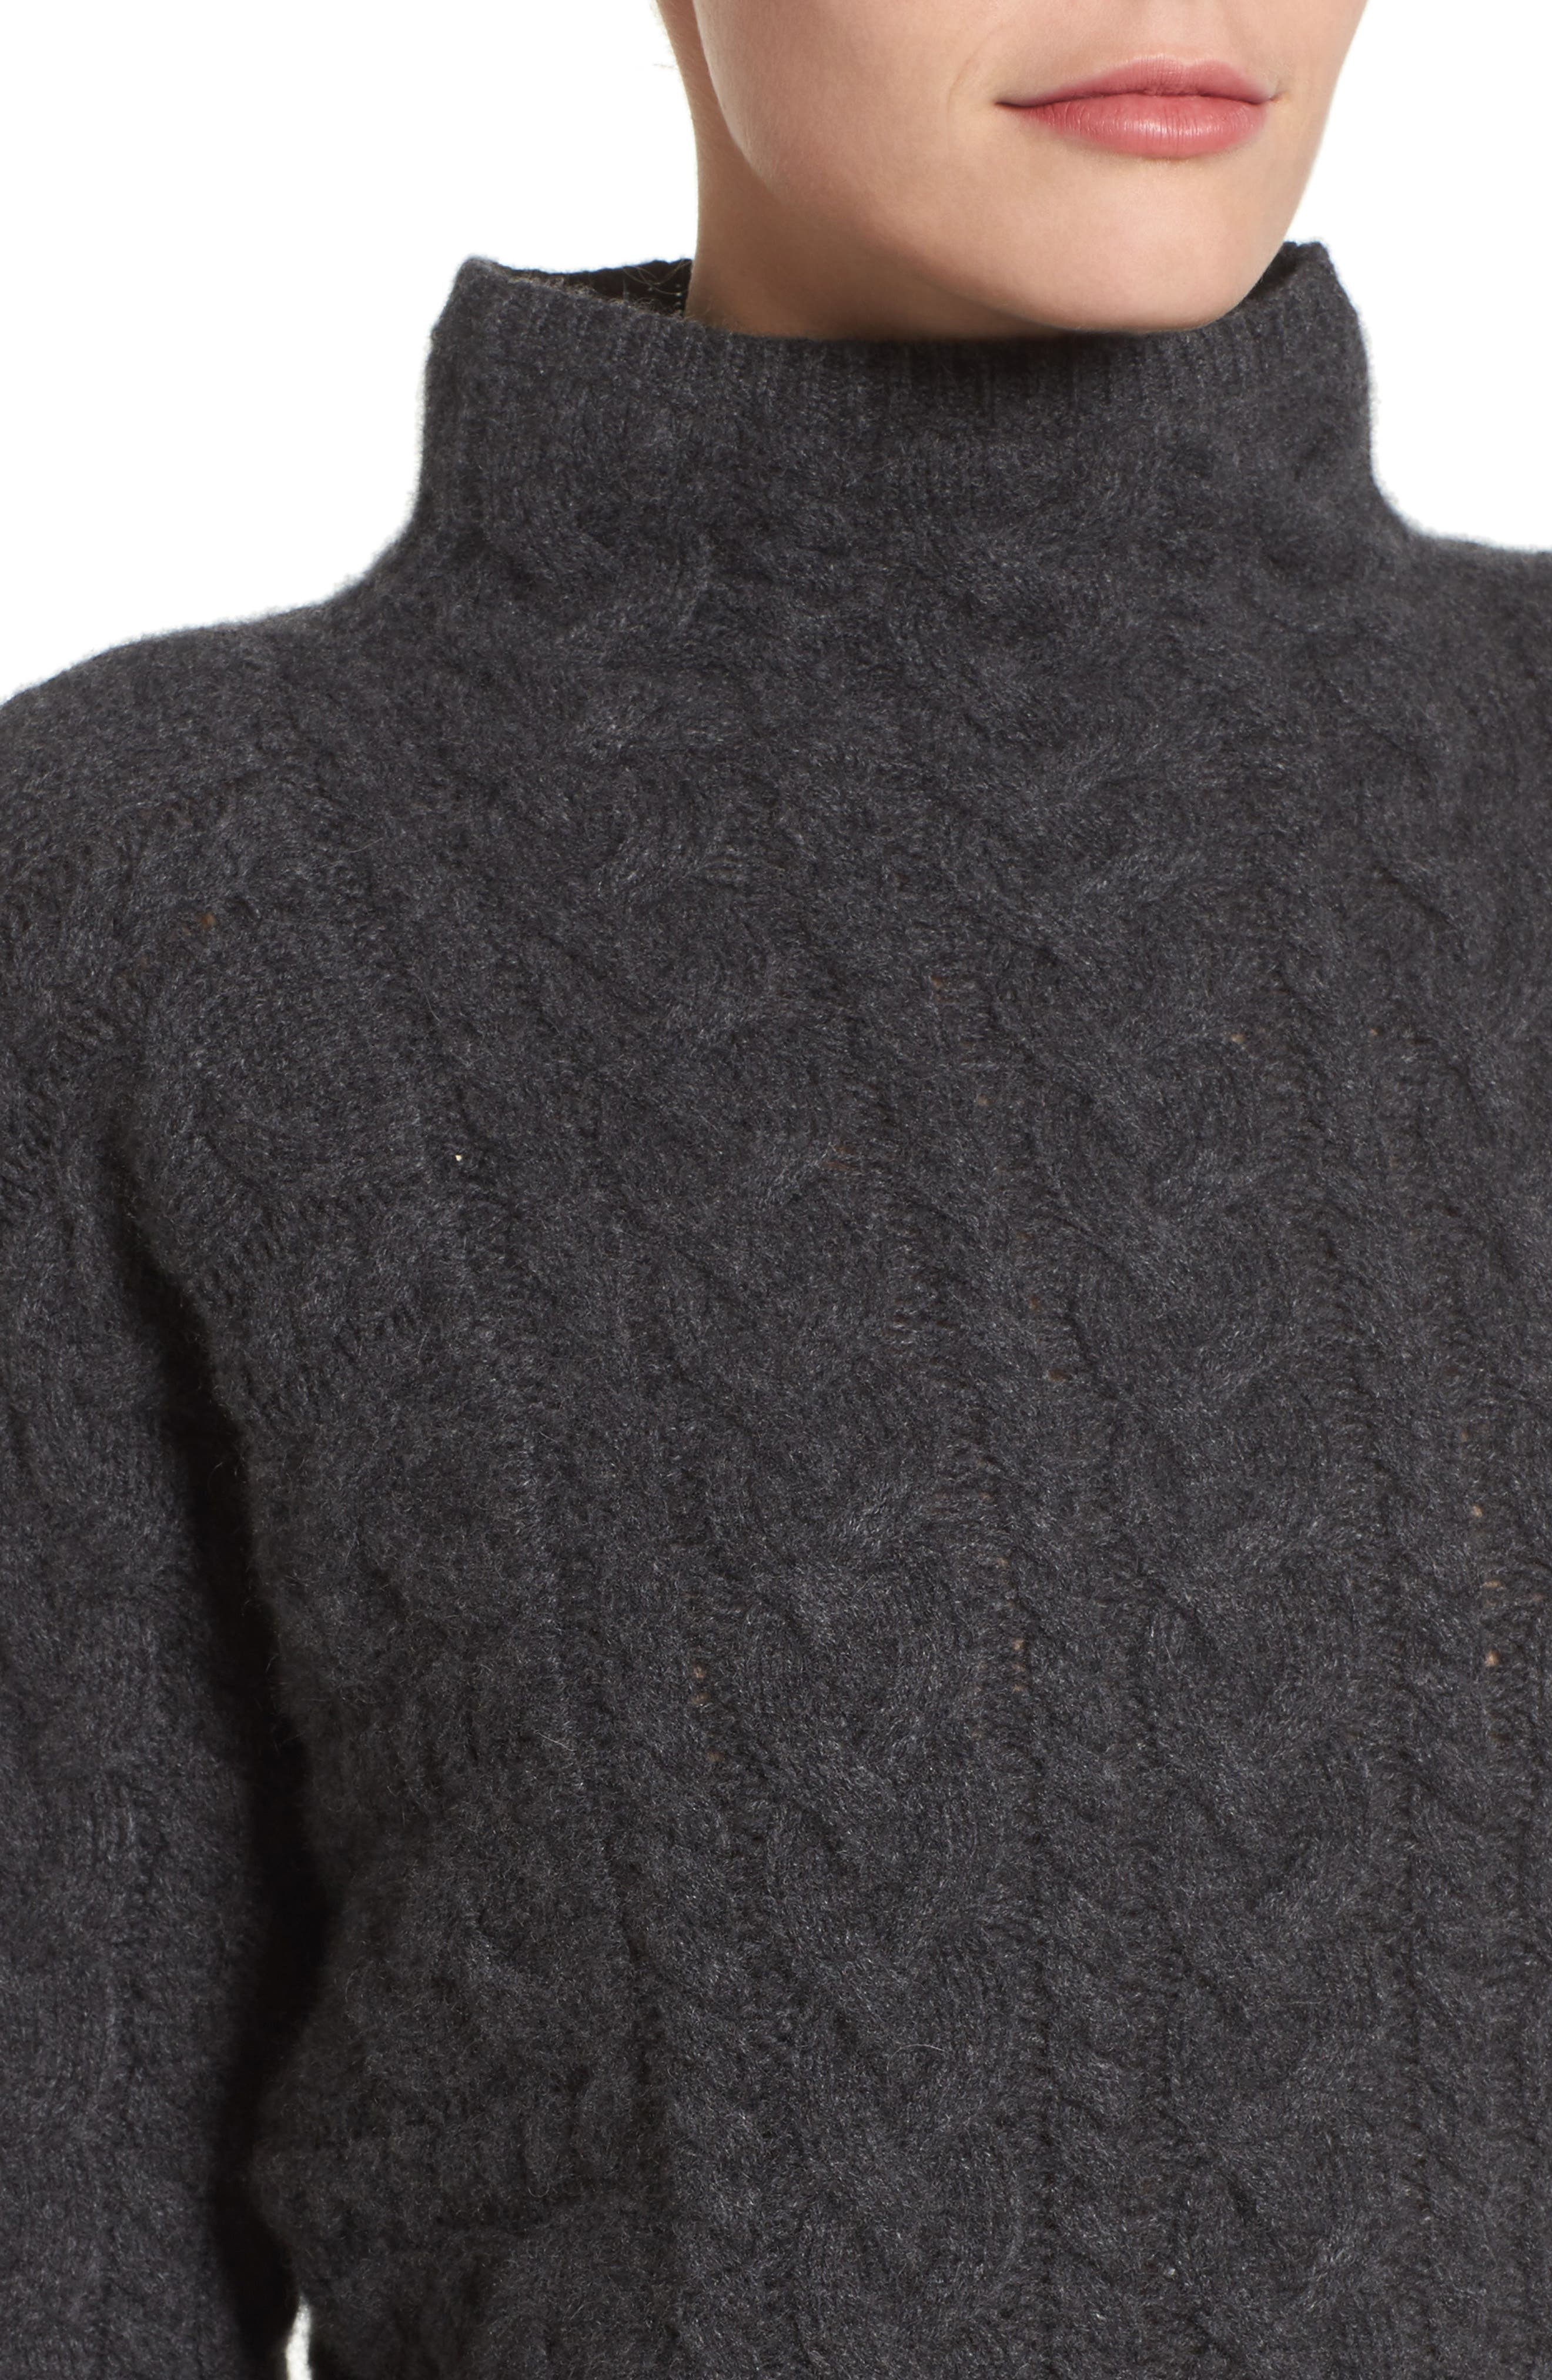 Cashmere Cable Sweater,                             Alternate thumbnail 4, color,                             021